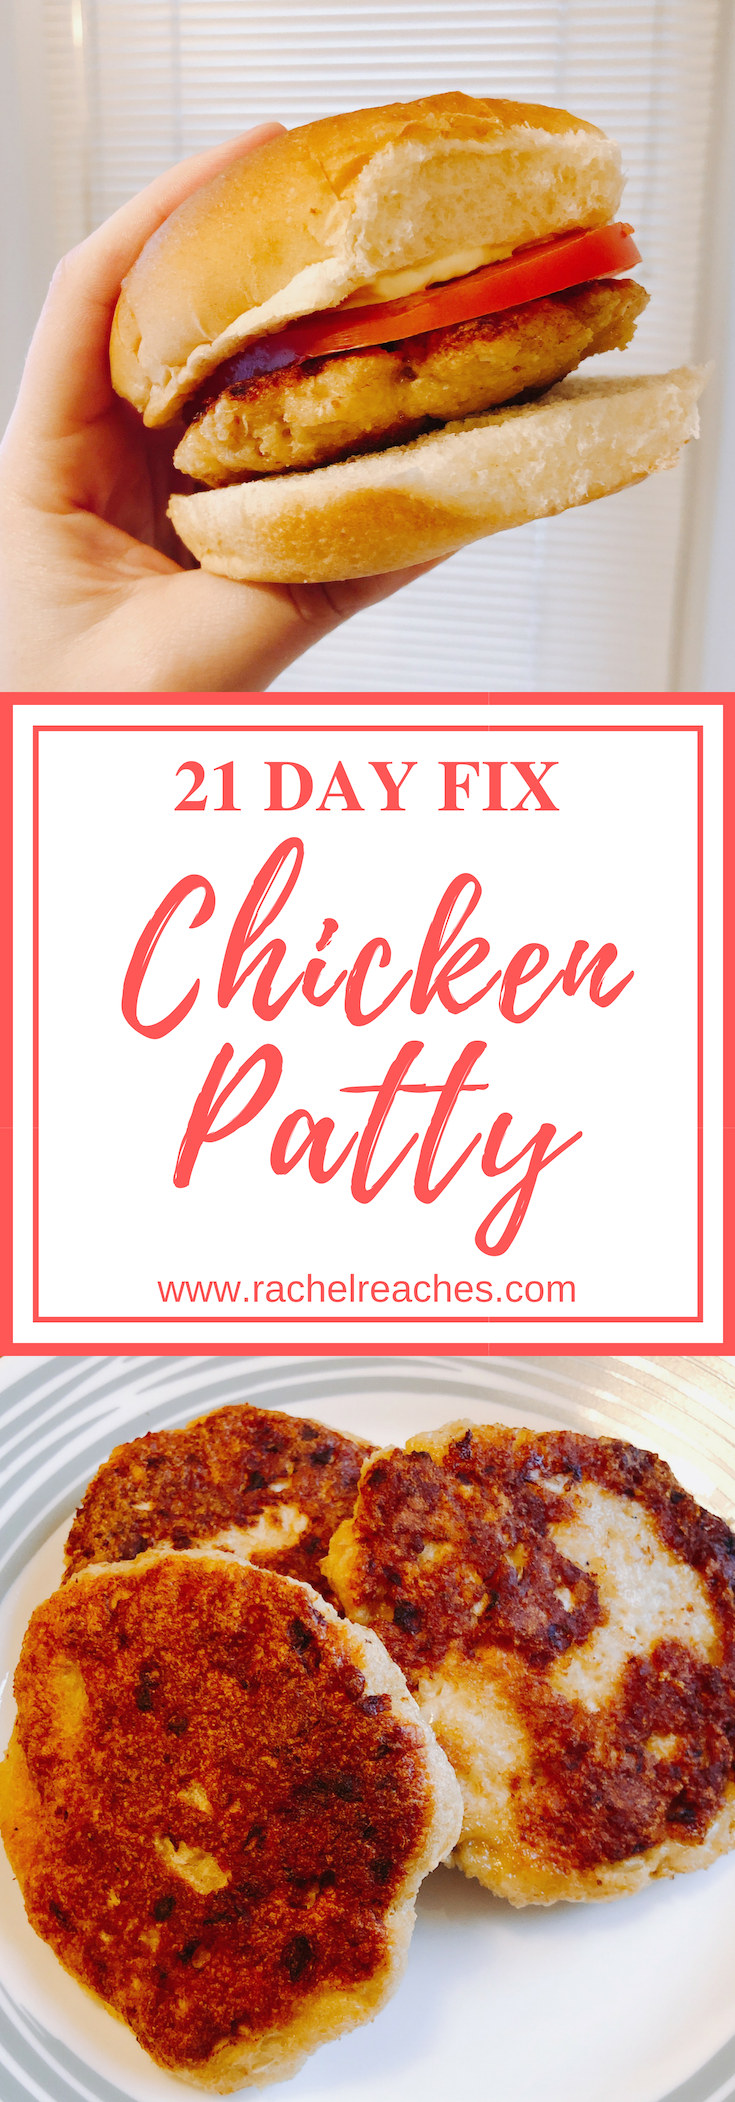 Chicken Patty Pin - 21 Day Fix.png